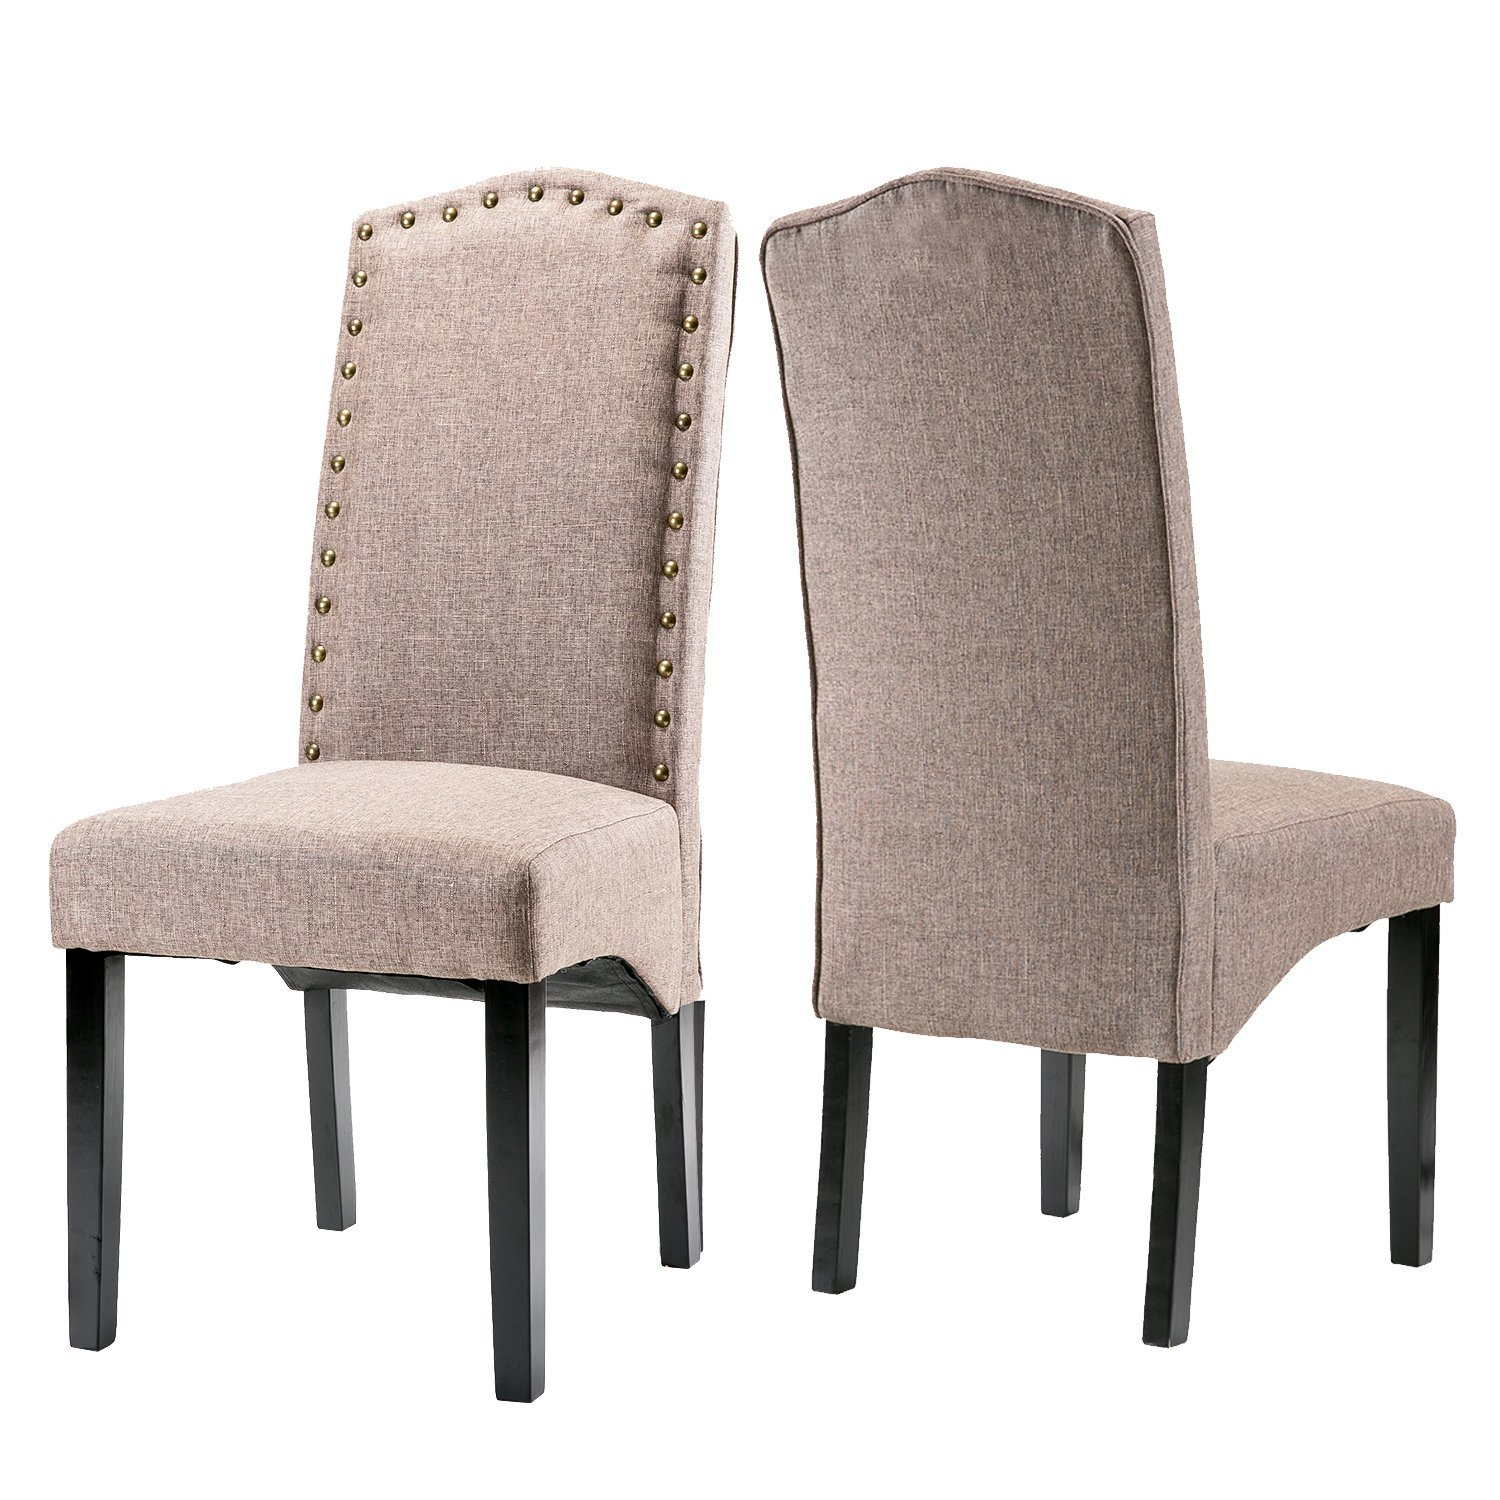 Merax Fabric Dining Chairs Script Chair with Wood Leg Set